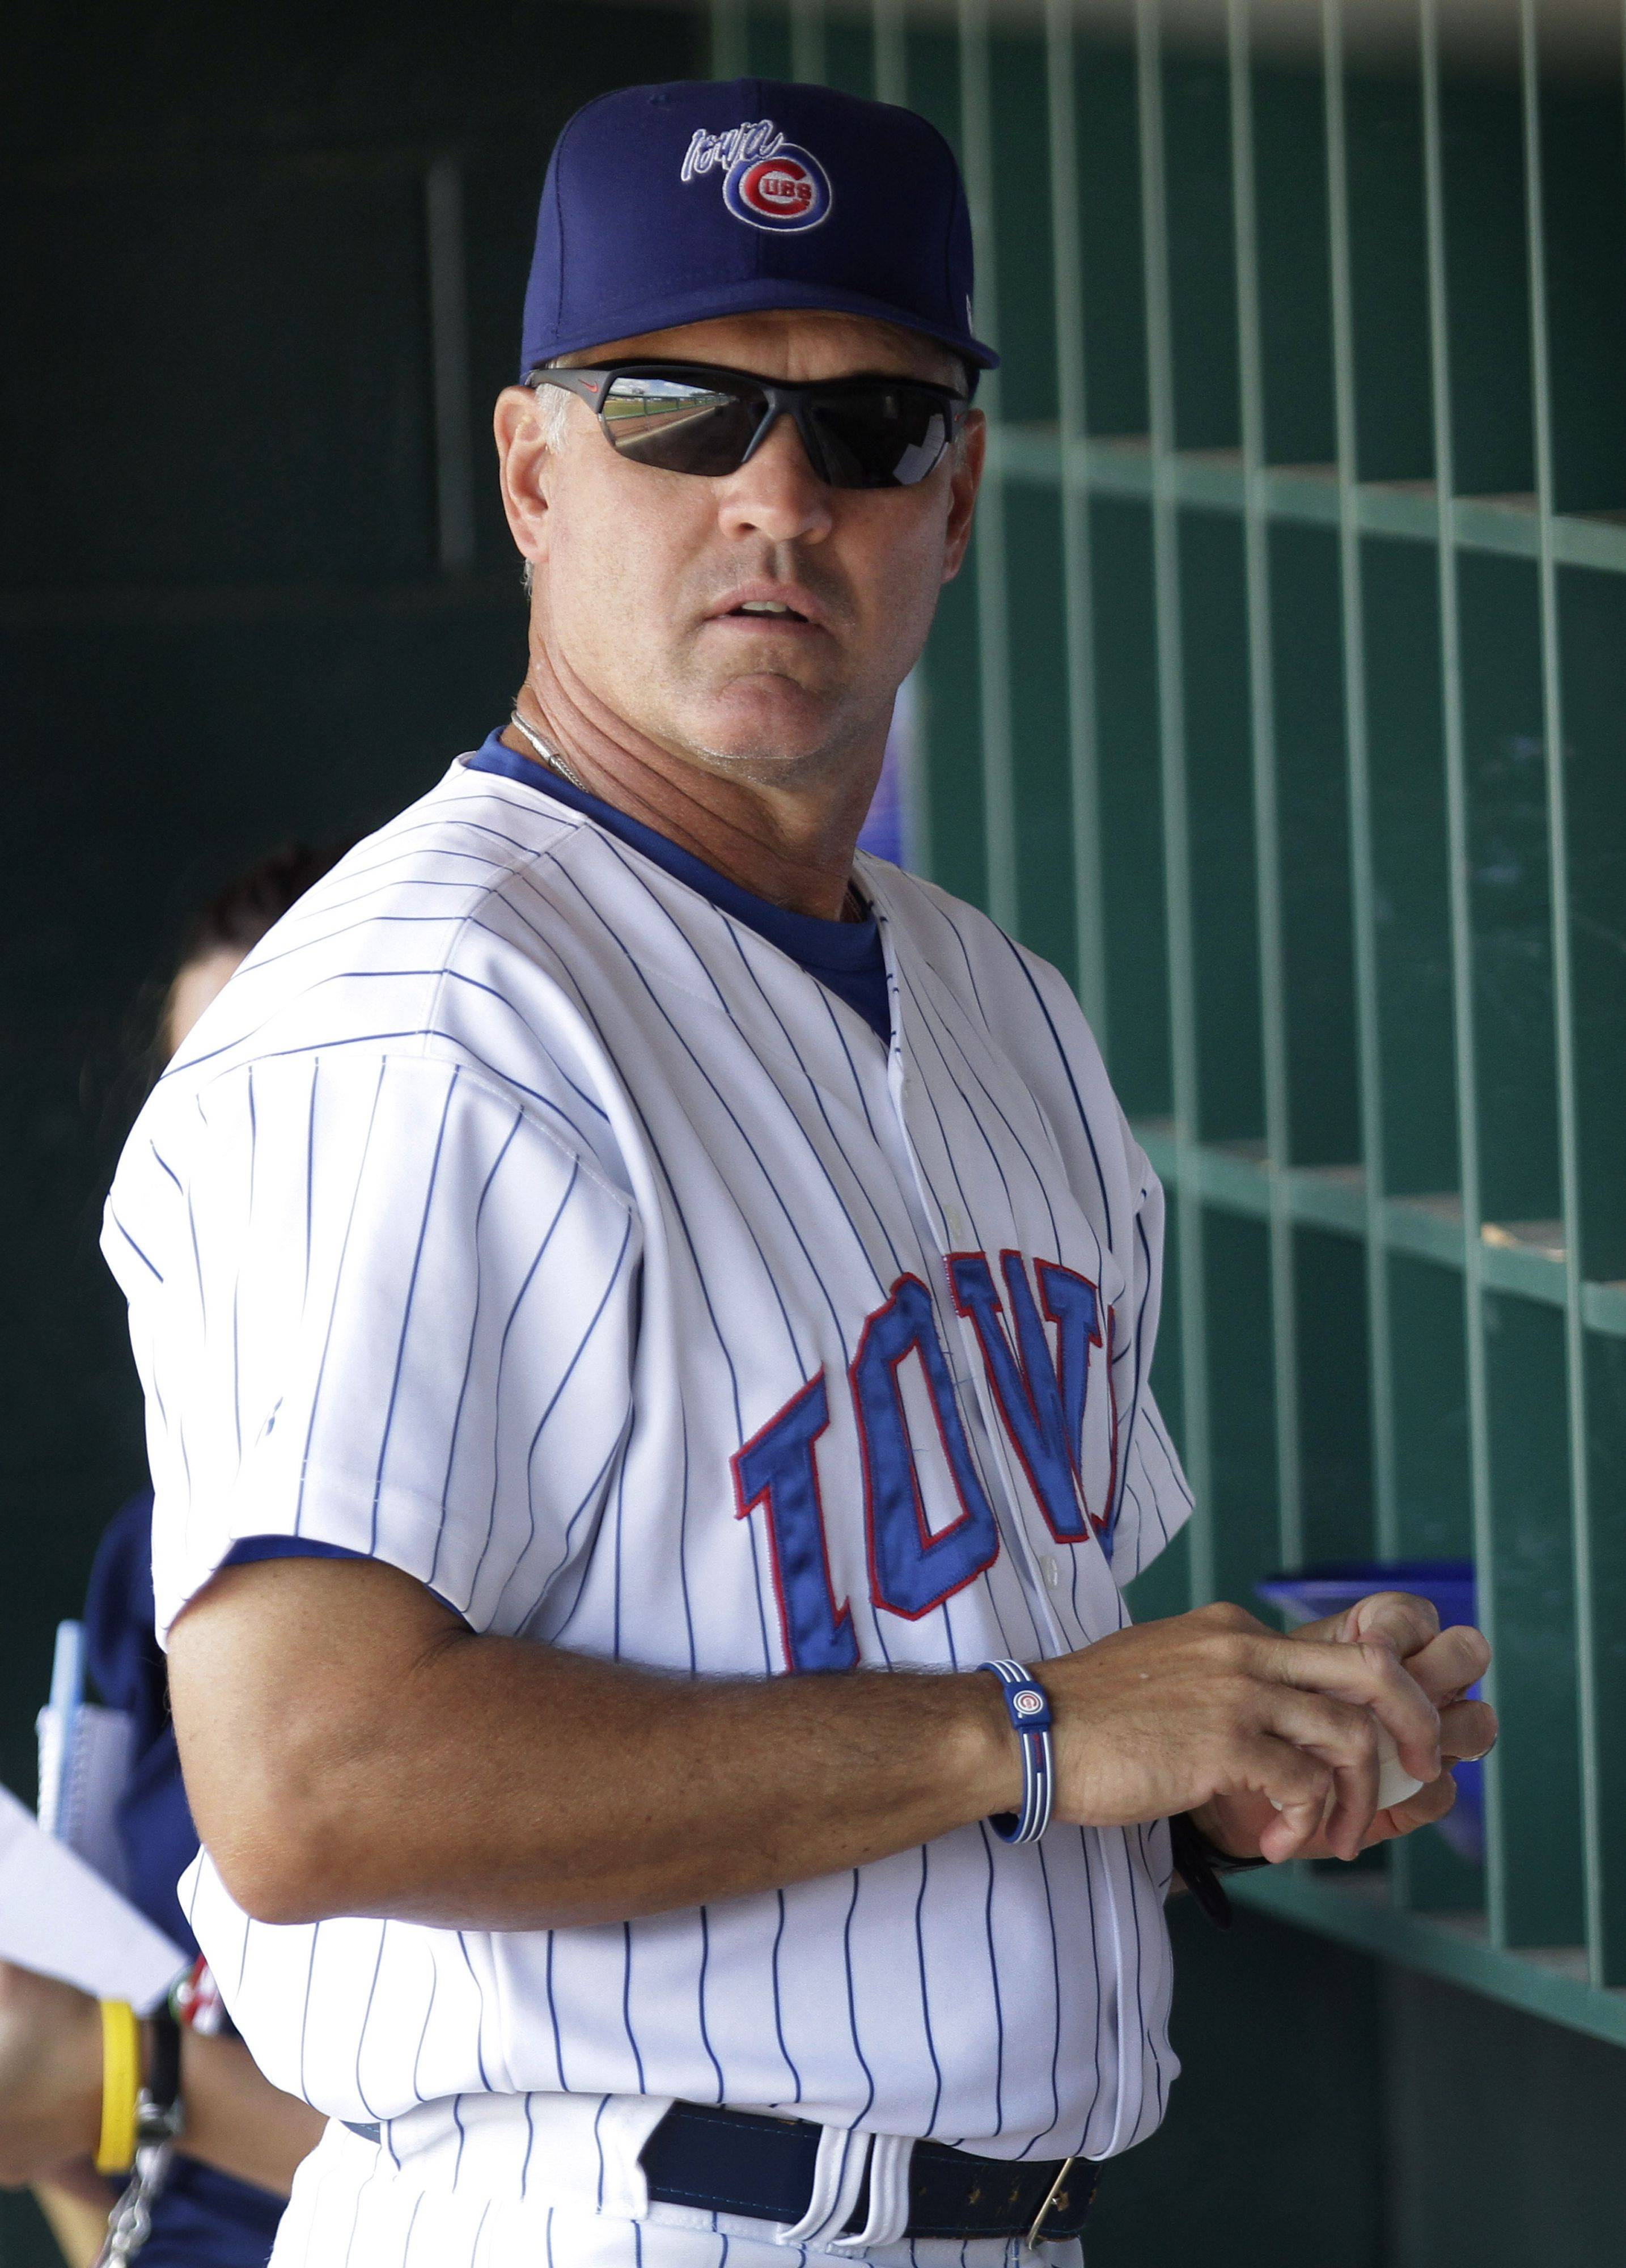 After leading the Iowa Cubs last season, Ryne Sandberg has accepted the Triple-A managerial job with the Phillies. He will manage the Lehigh Valey IronPigs in Allentown, PA., about 75 miles north of Philadelphia.